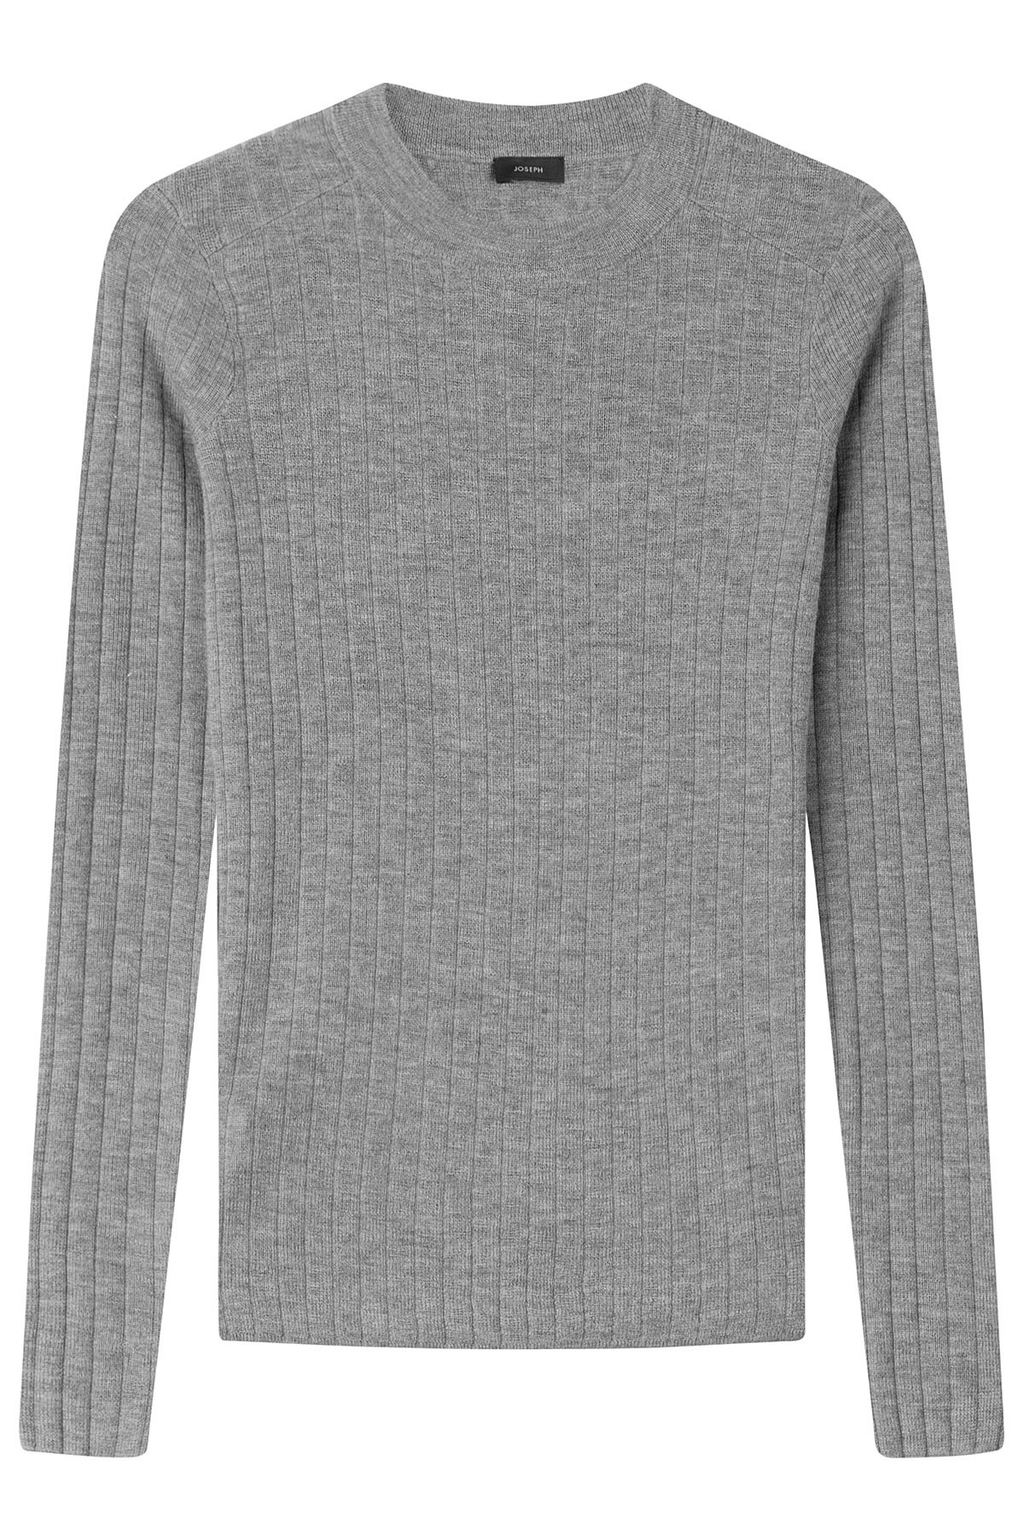 Ribbed Cashmere Pullover - neckline: round neck; pattern: plain; style: standard; predominant colour: mid grey; occasions: casual, work, creative work; length: standard; fit: standard fit; fibres: cashmere - 100%; sleeve length: long sleeve; sleeve style: standard; texture group: knits/crochet; pattern type: knitted - fine stitch; season: s/s 2016; wardrobe: investment